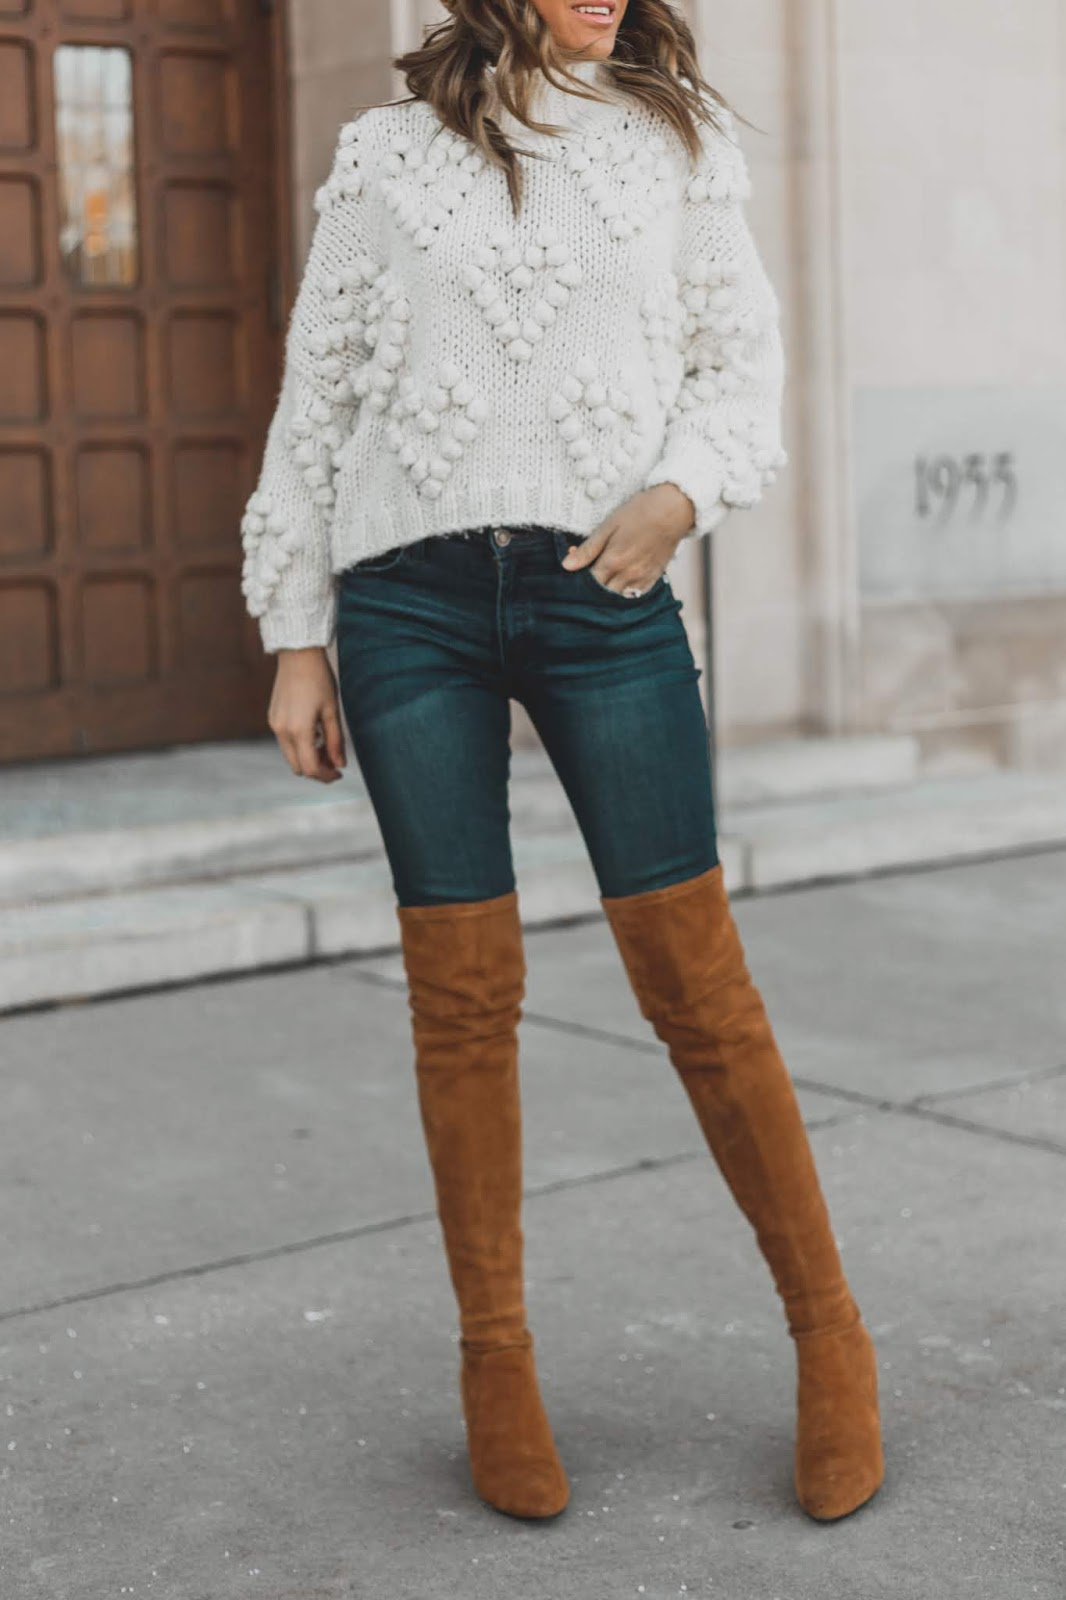 White Pom Sweater With Jeans And OTK Boots